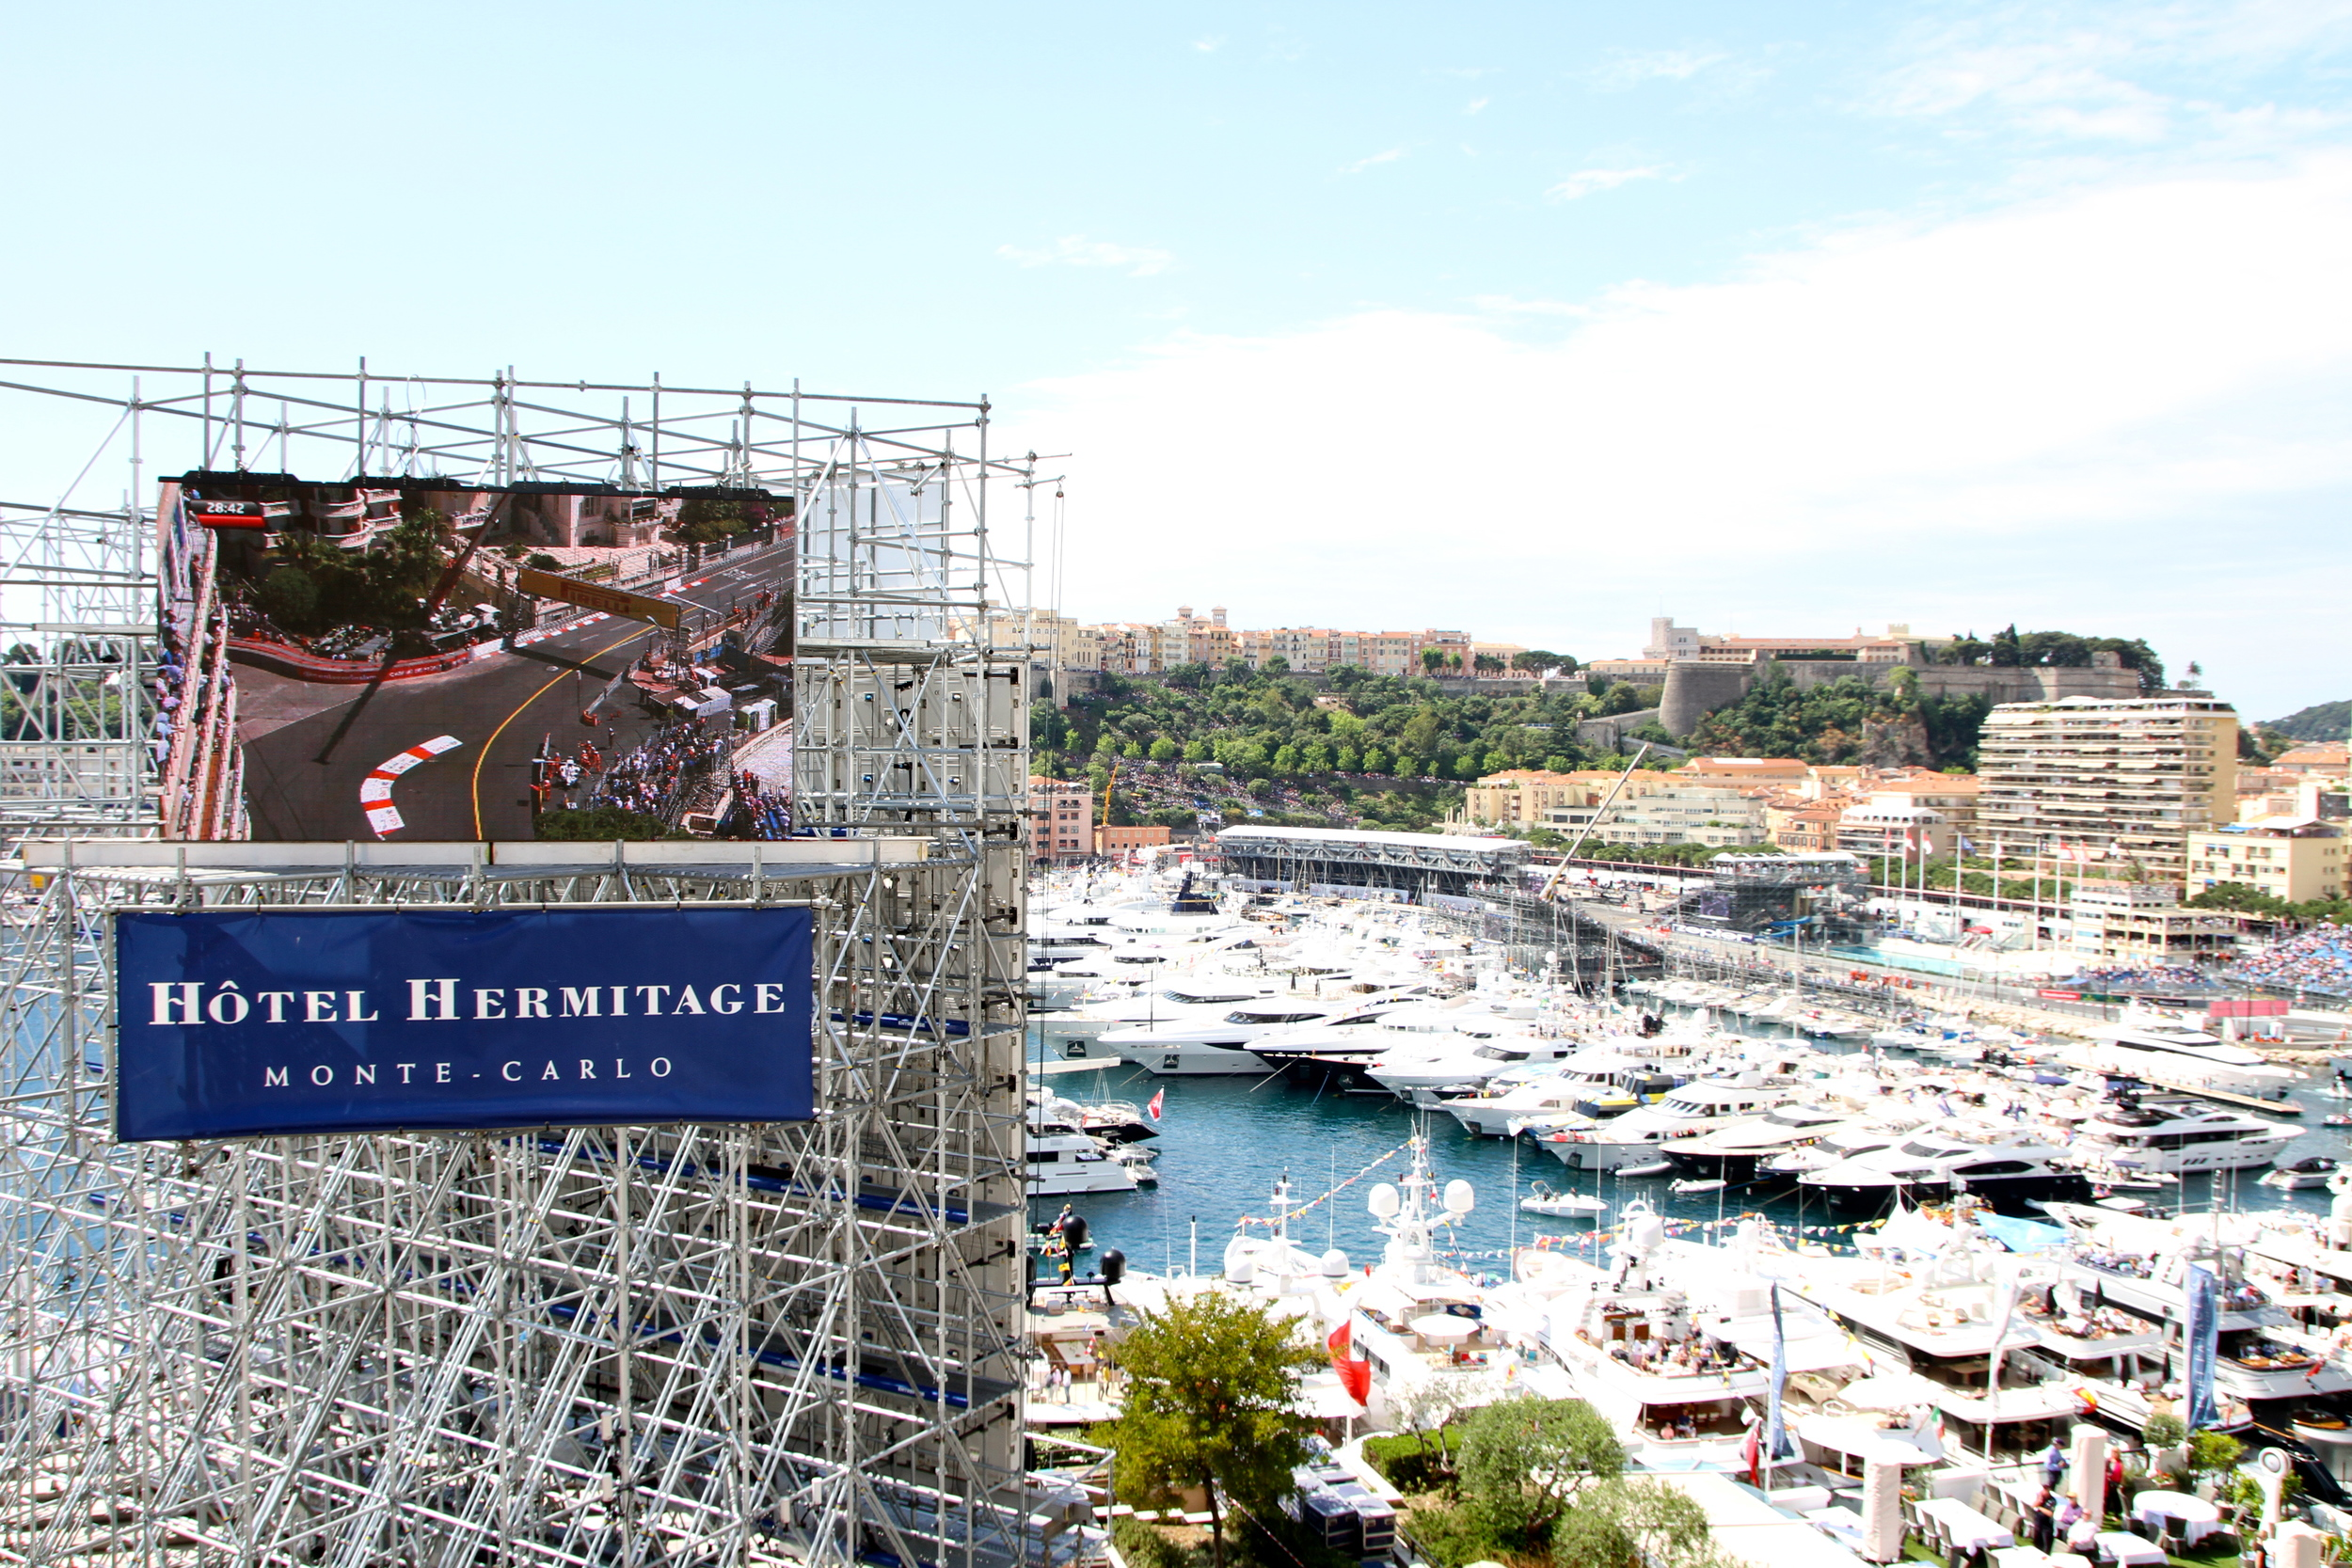 A giant television screen was located directly opposite the terrace, built especially for the Grand Prix, which enhanced our view of the rest of the track.